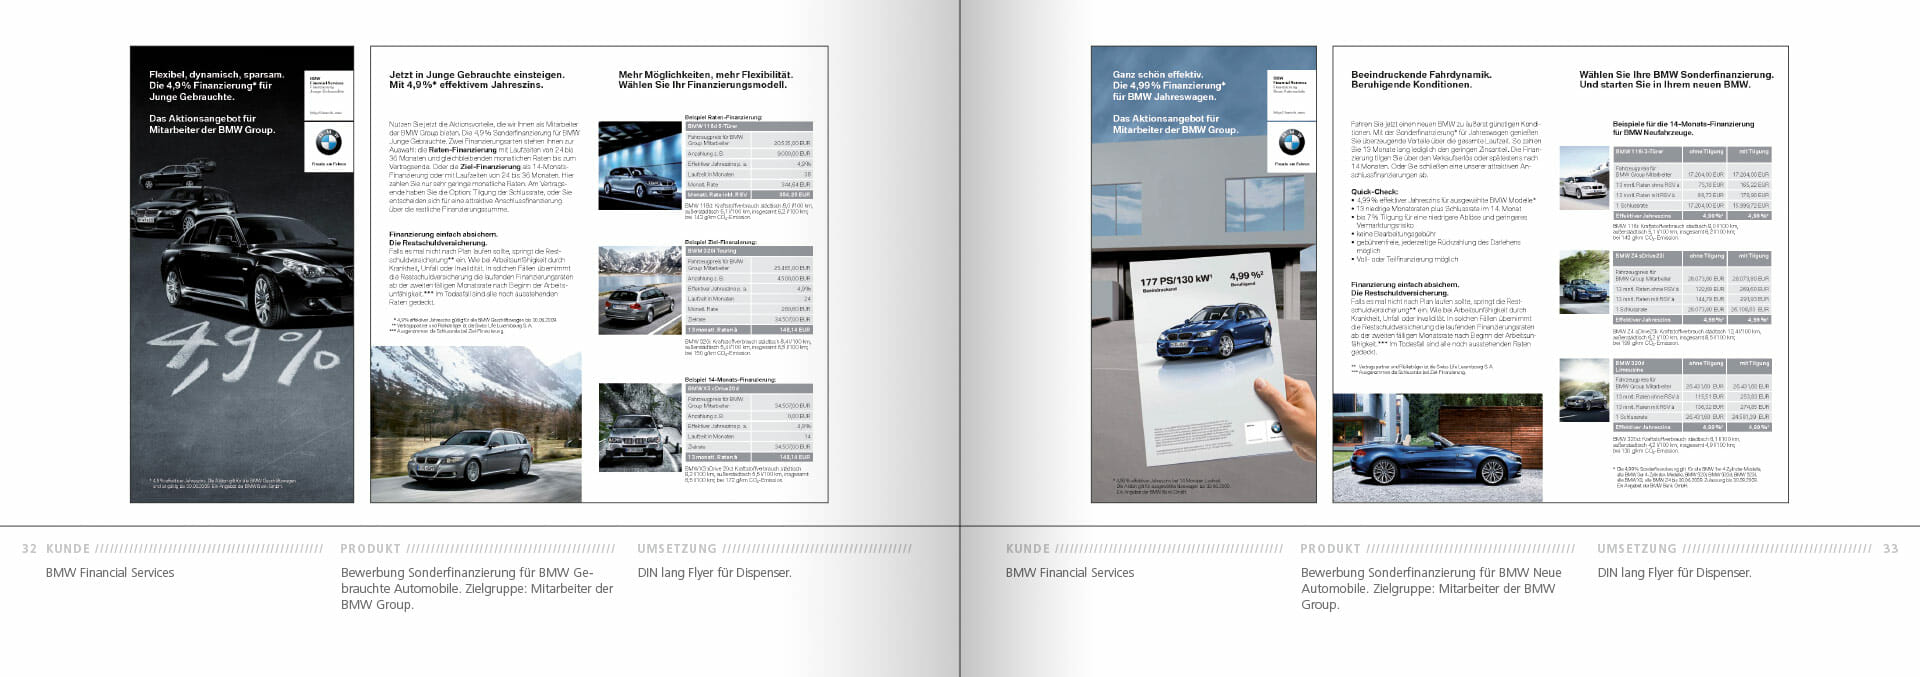 BMW Group Works 2001-2009 Booklet 32-33